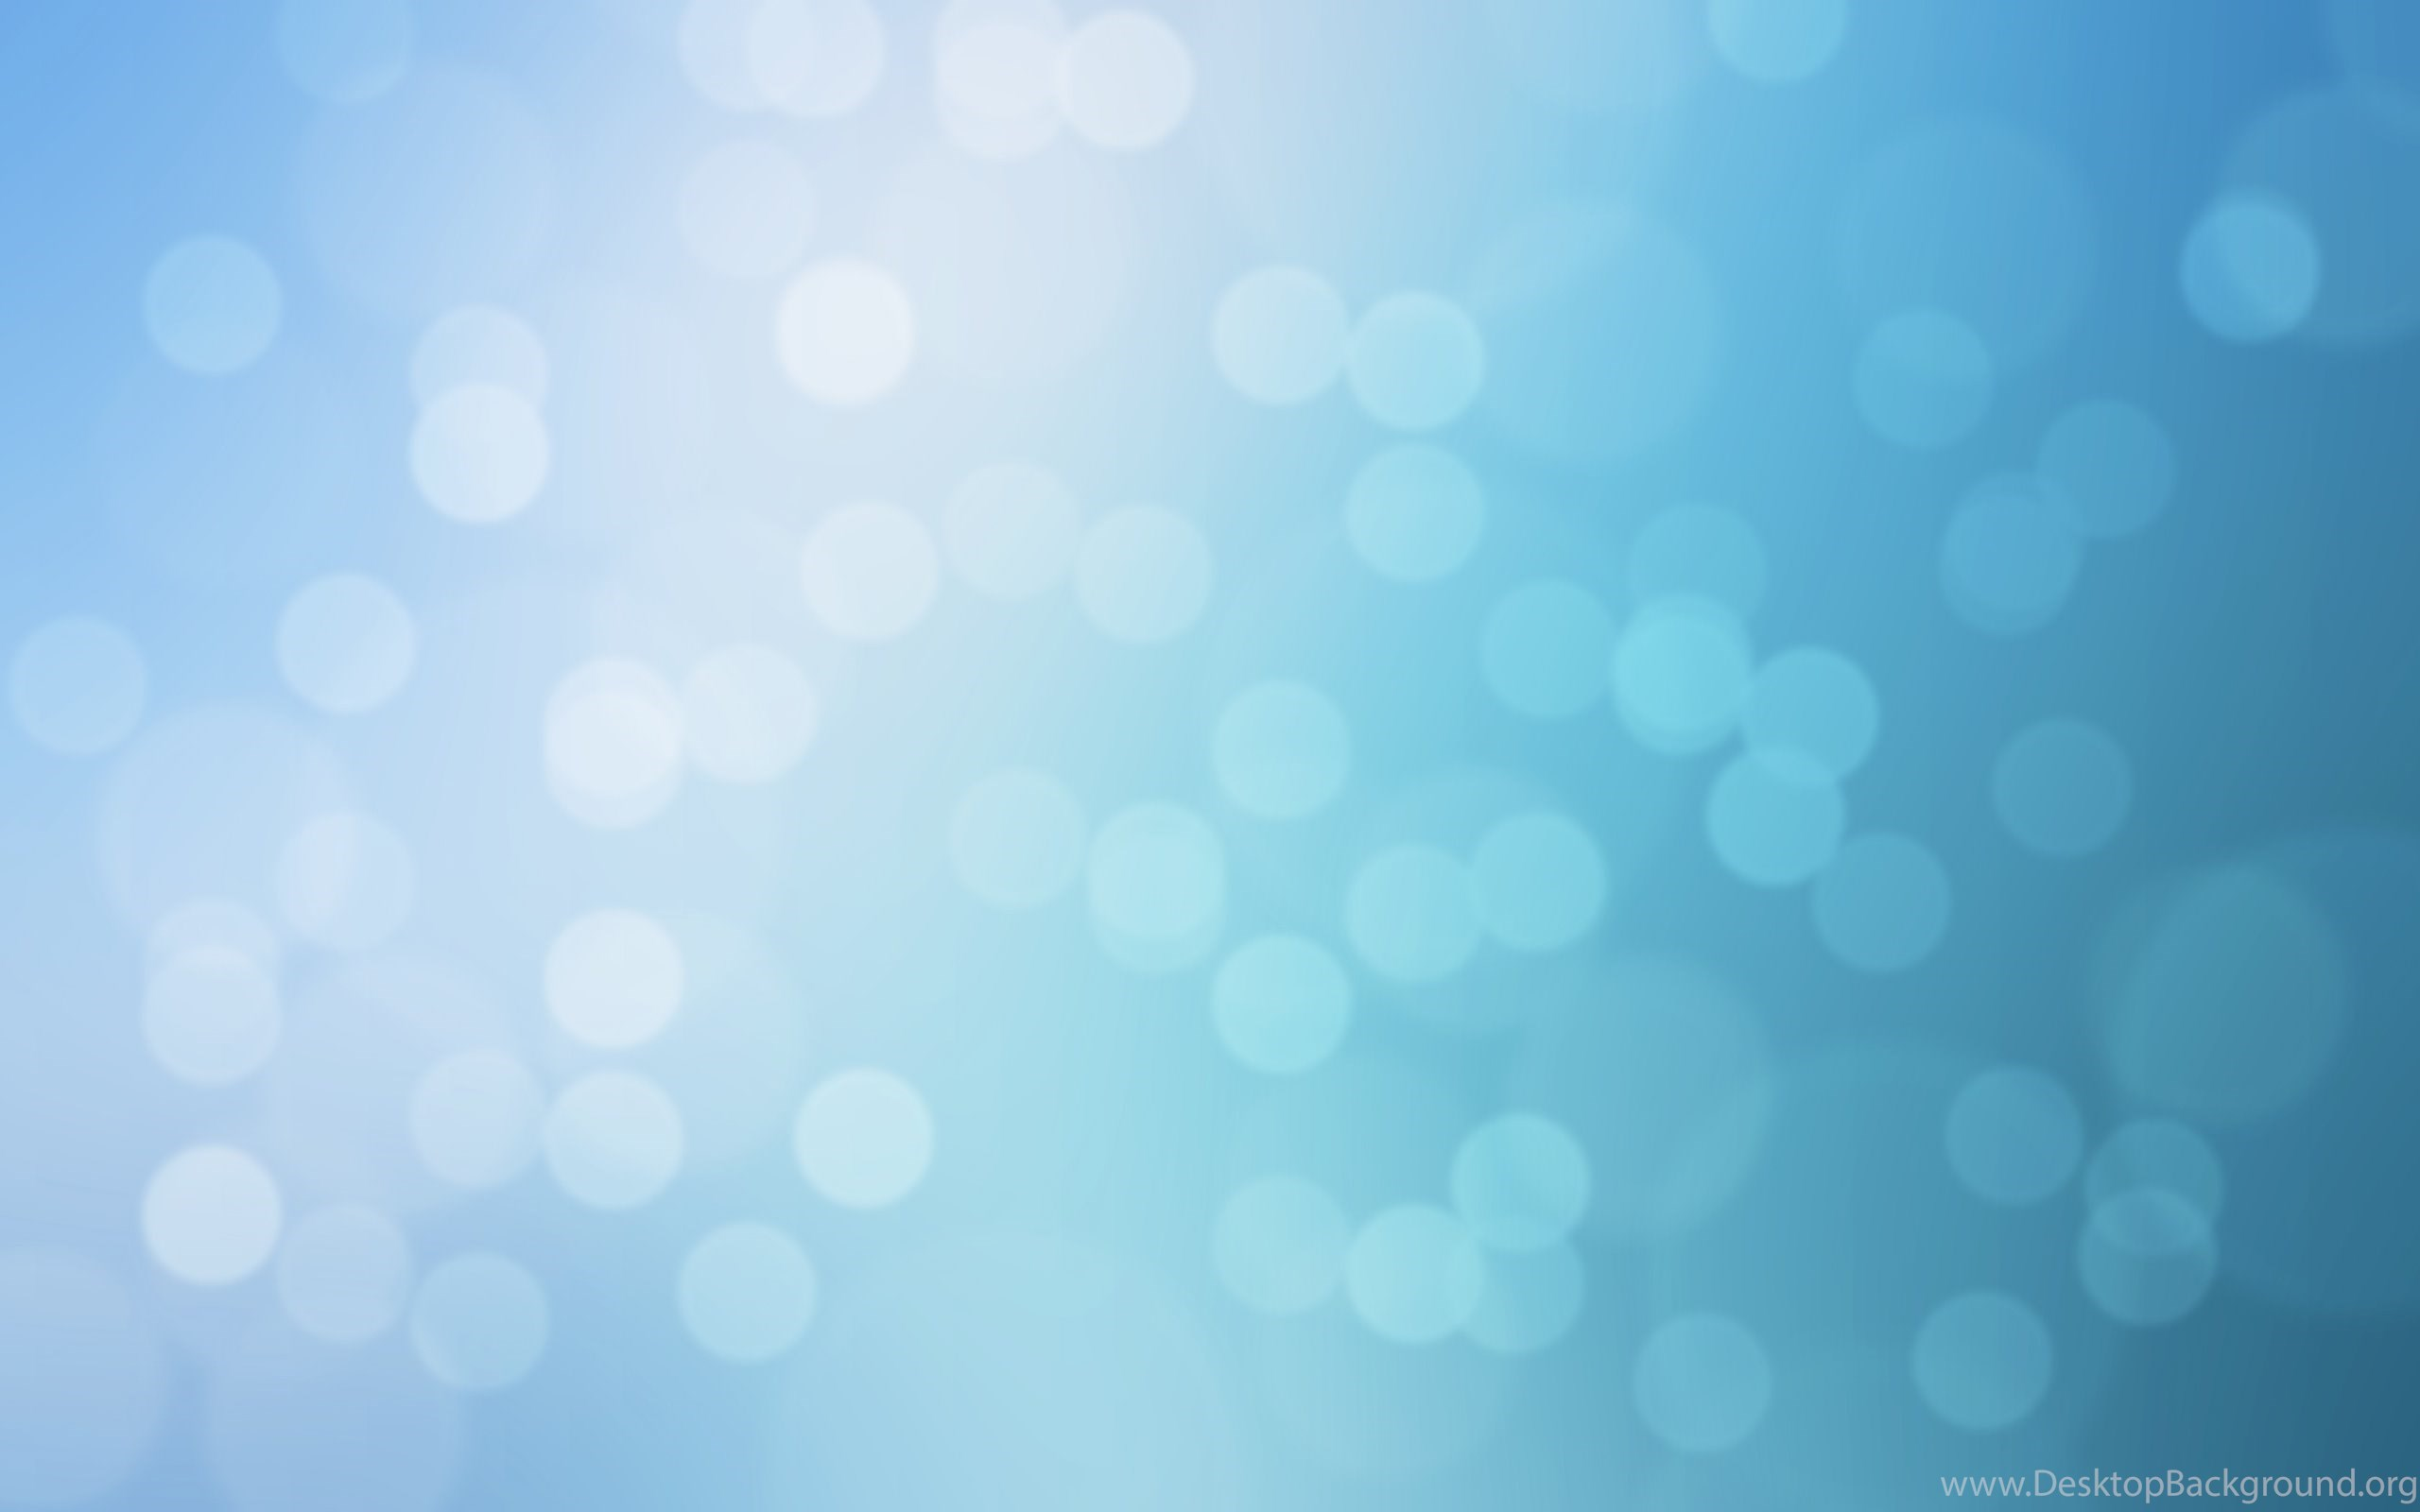 Light Blue Texture Bokeh Textures Grey Soft Backgrounds High Res ...  Desktop Background